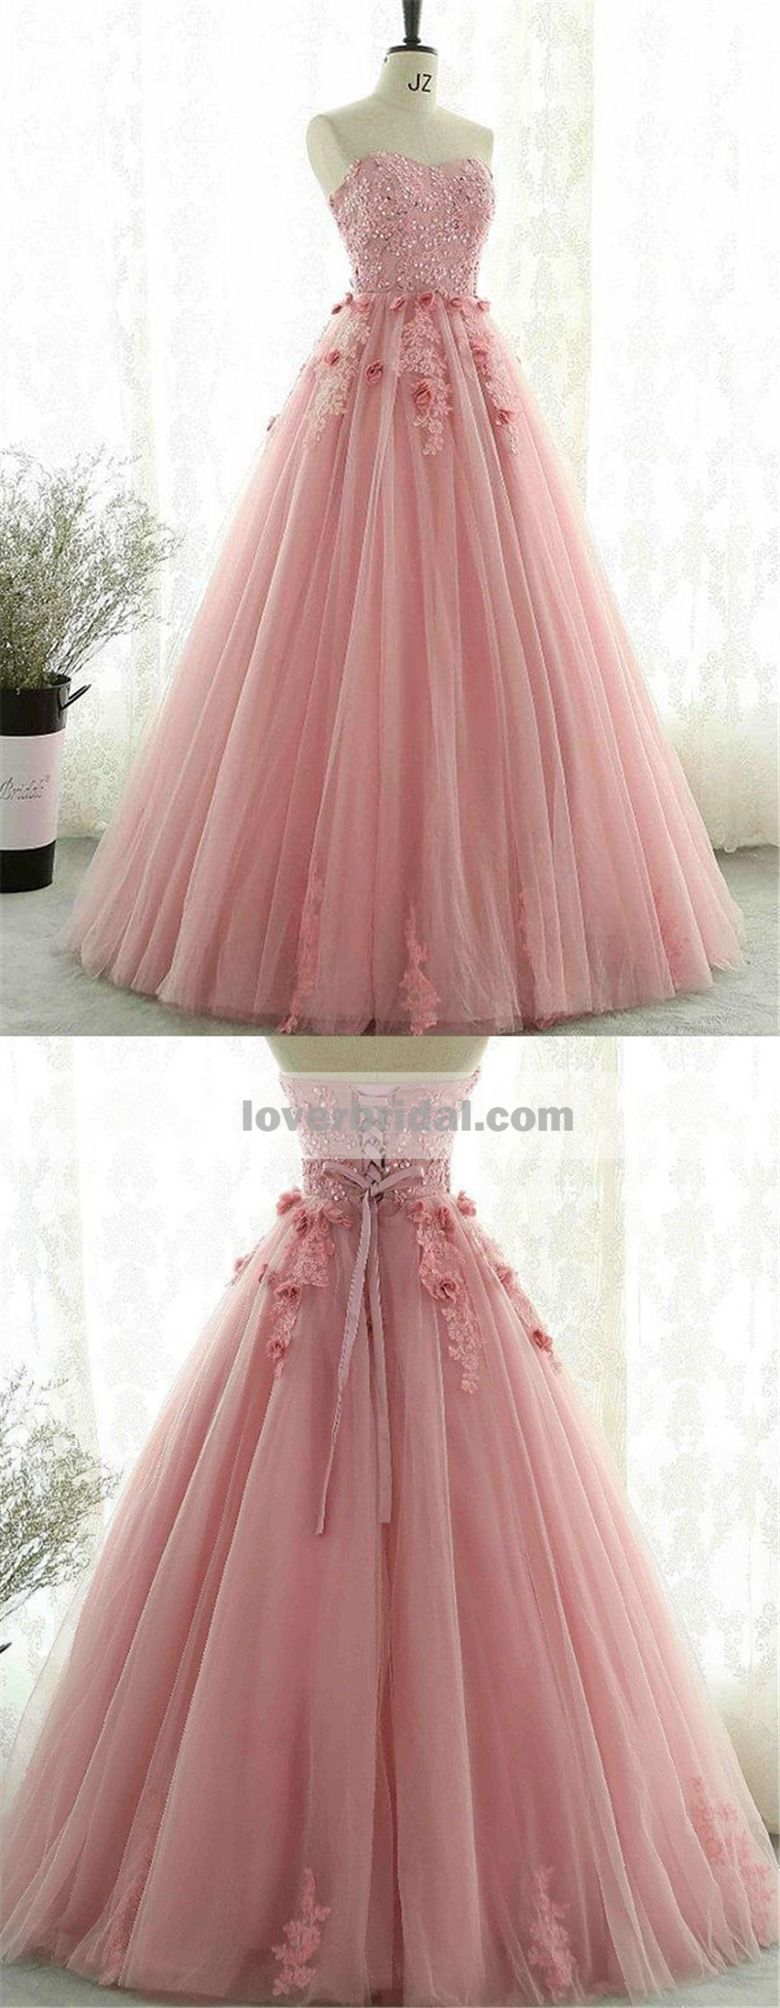 Sweetheart Blush Pink Lace Evening Prom Dresses, Sweet 13 Dresses